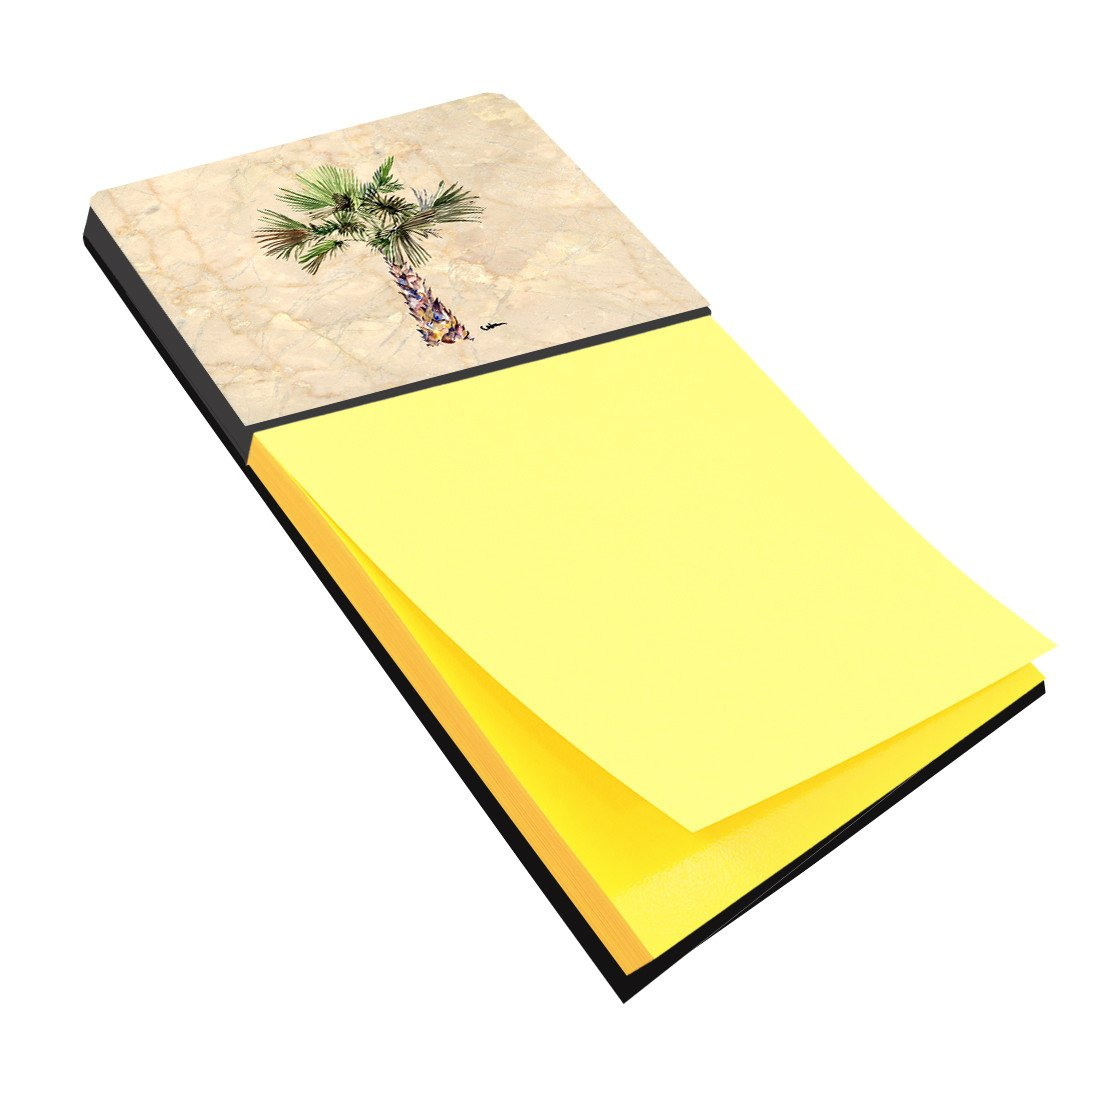 Palm Tree Refiillable Sticky Note Holder or Postit Note Dispenser 8480SN by Caroline's Treasures